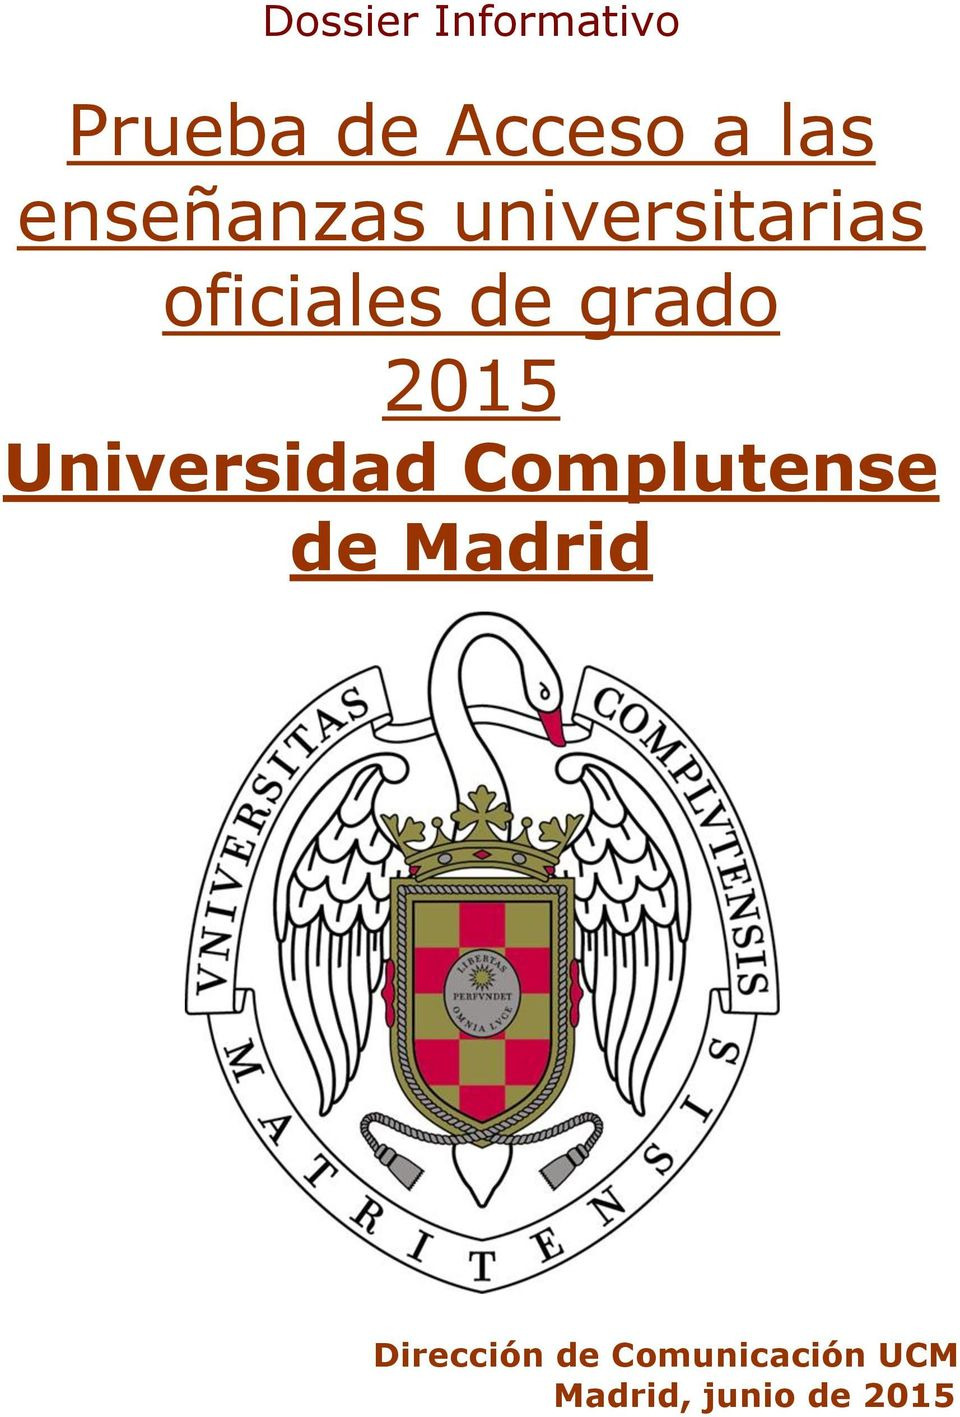 2015 Universidad Complutense de Madrid